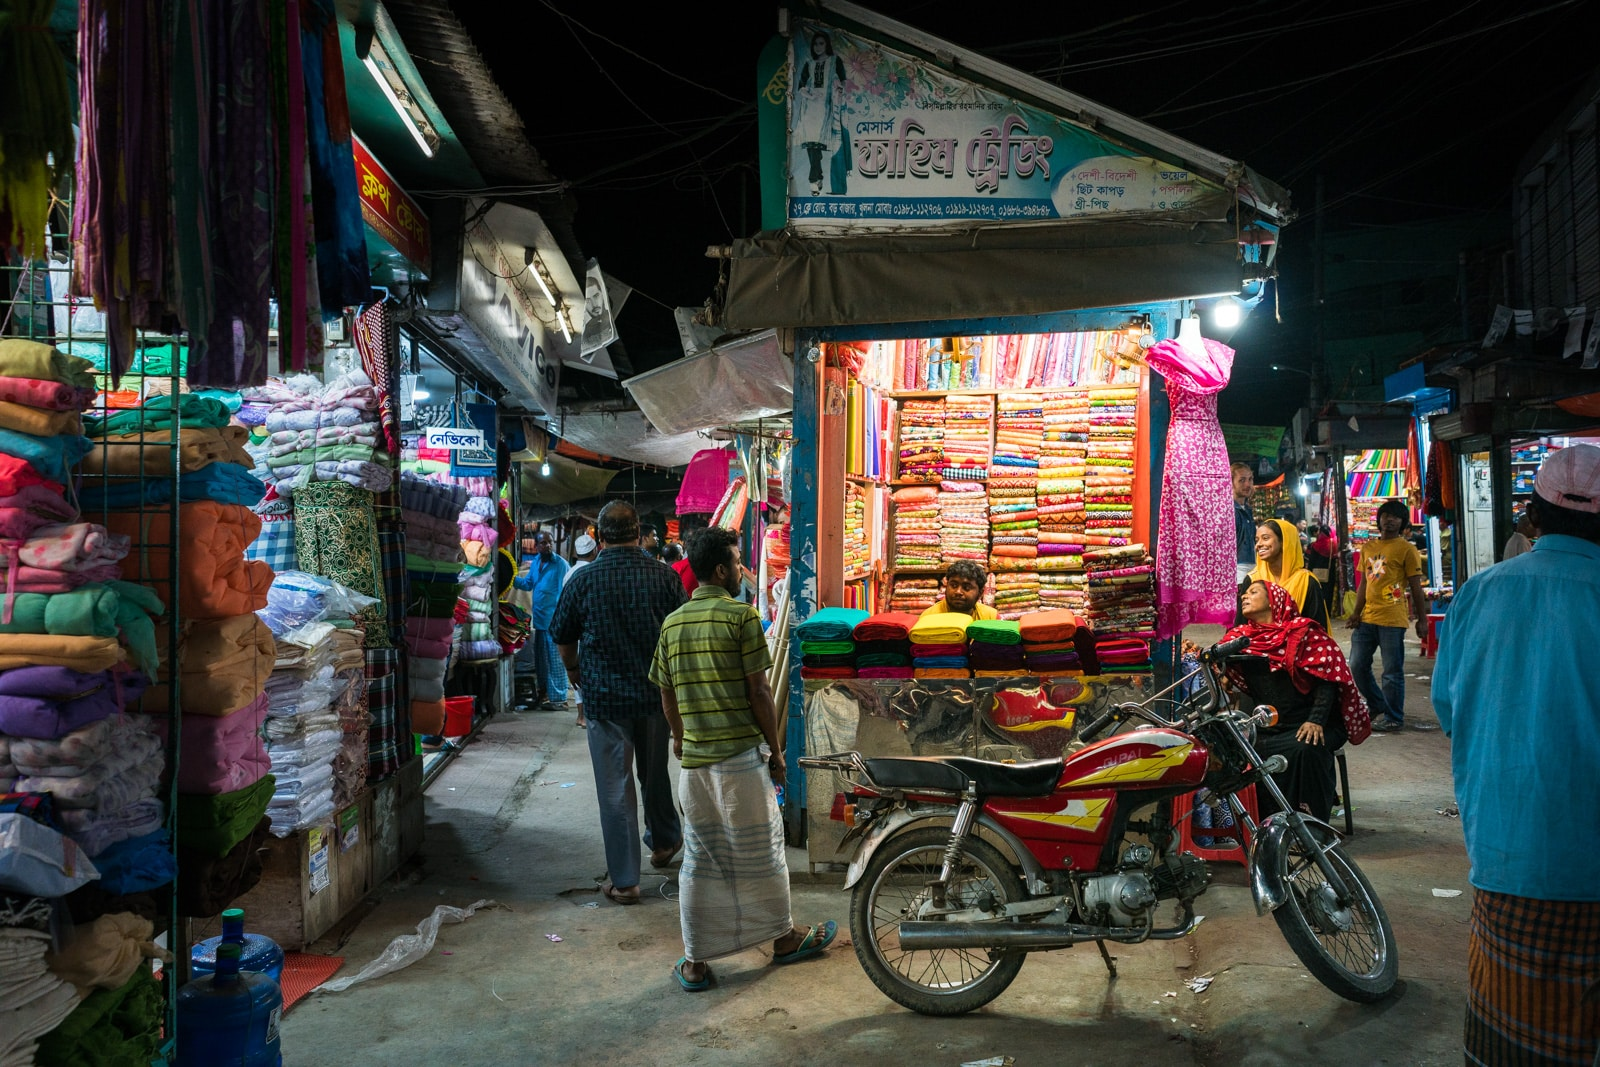 Backpacking in Bangladesh travel guide - Night at Boro Bazar market in Khulna - Lost With Purpose travel blog